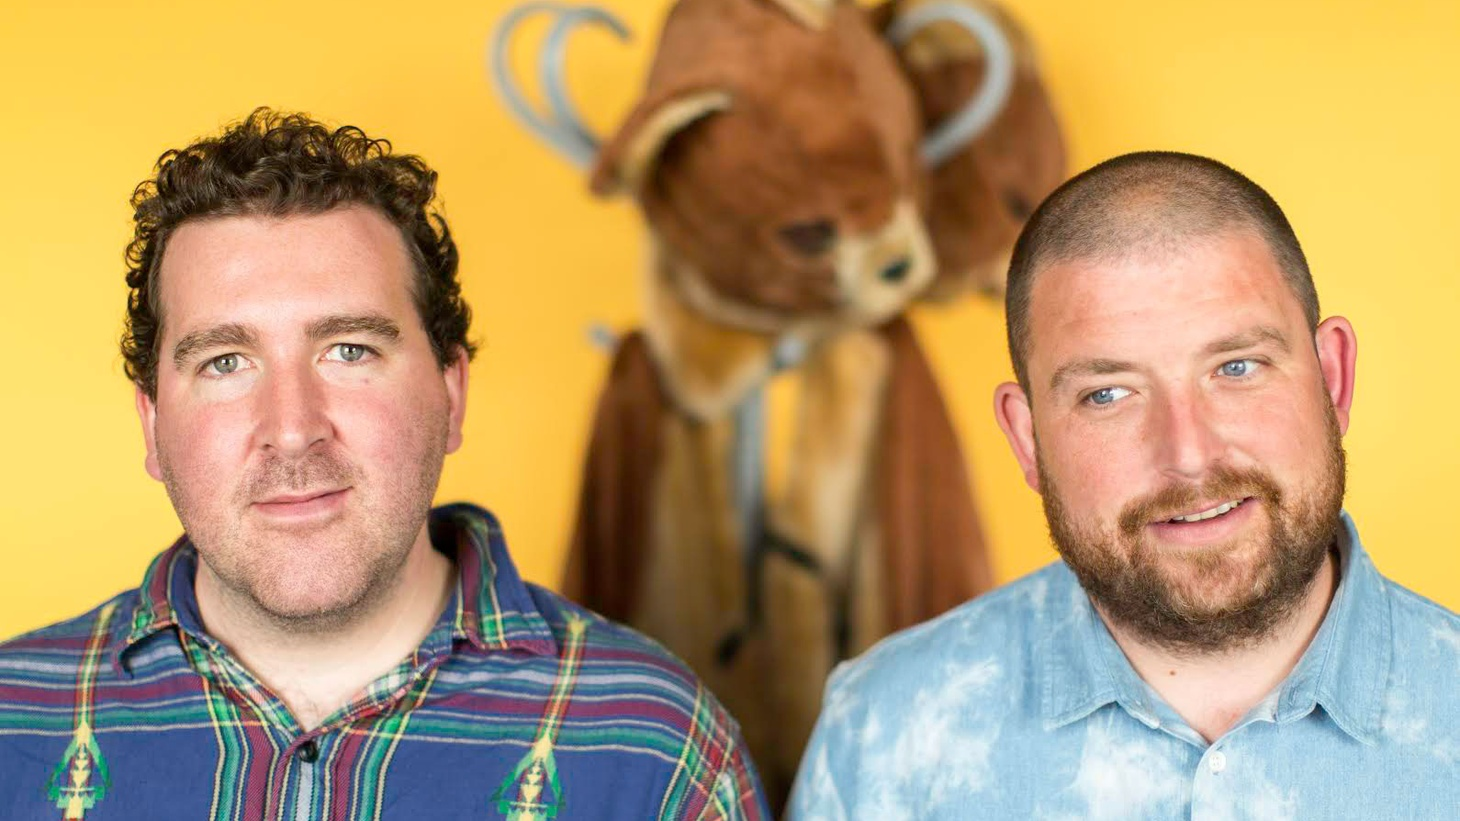 The 2 Bears is a London duo composed of Joe Goddard (Hot Chip) and Raf Rundell.